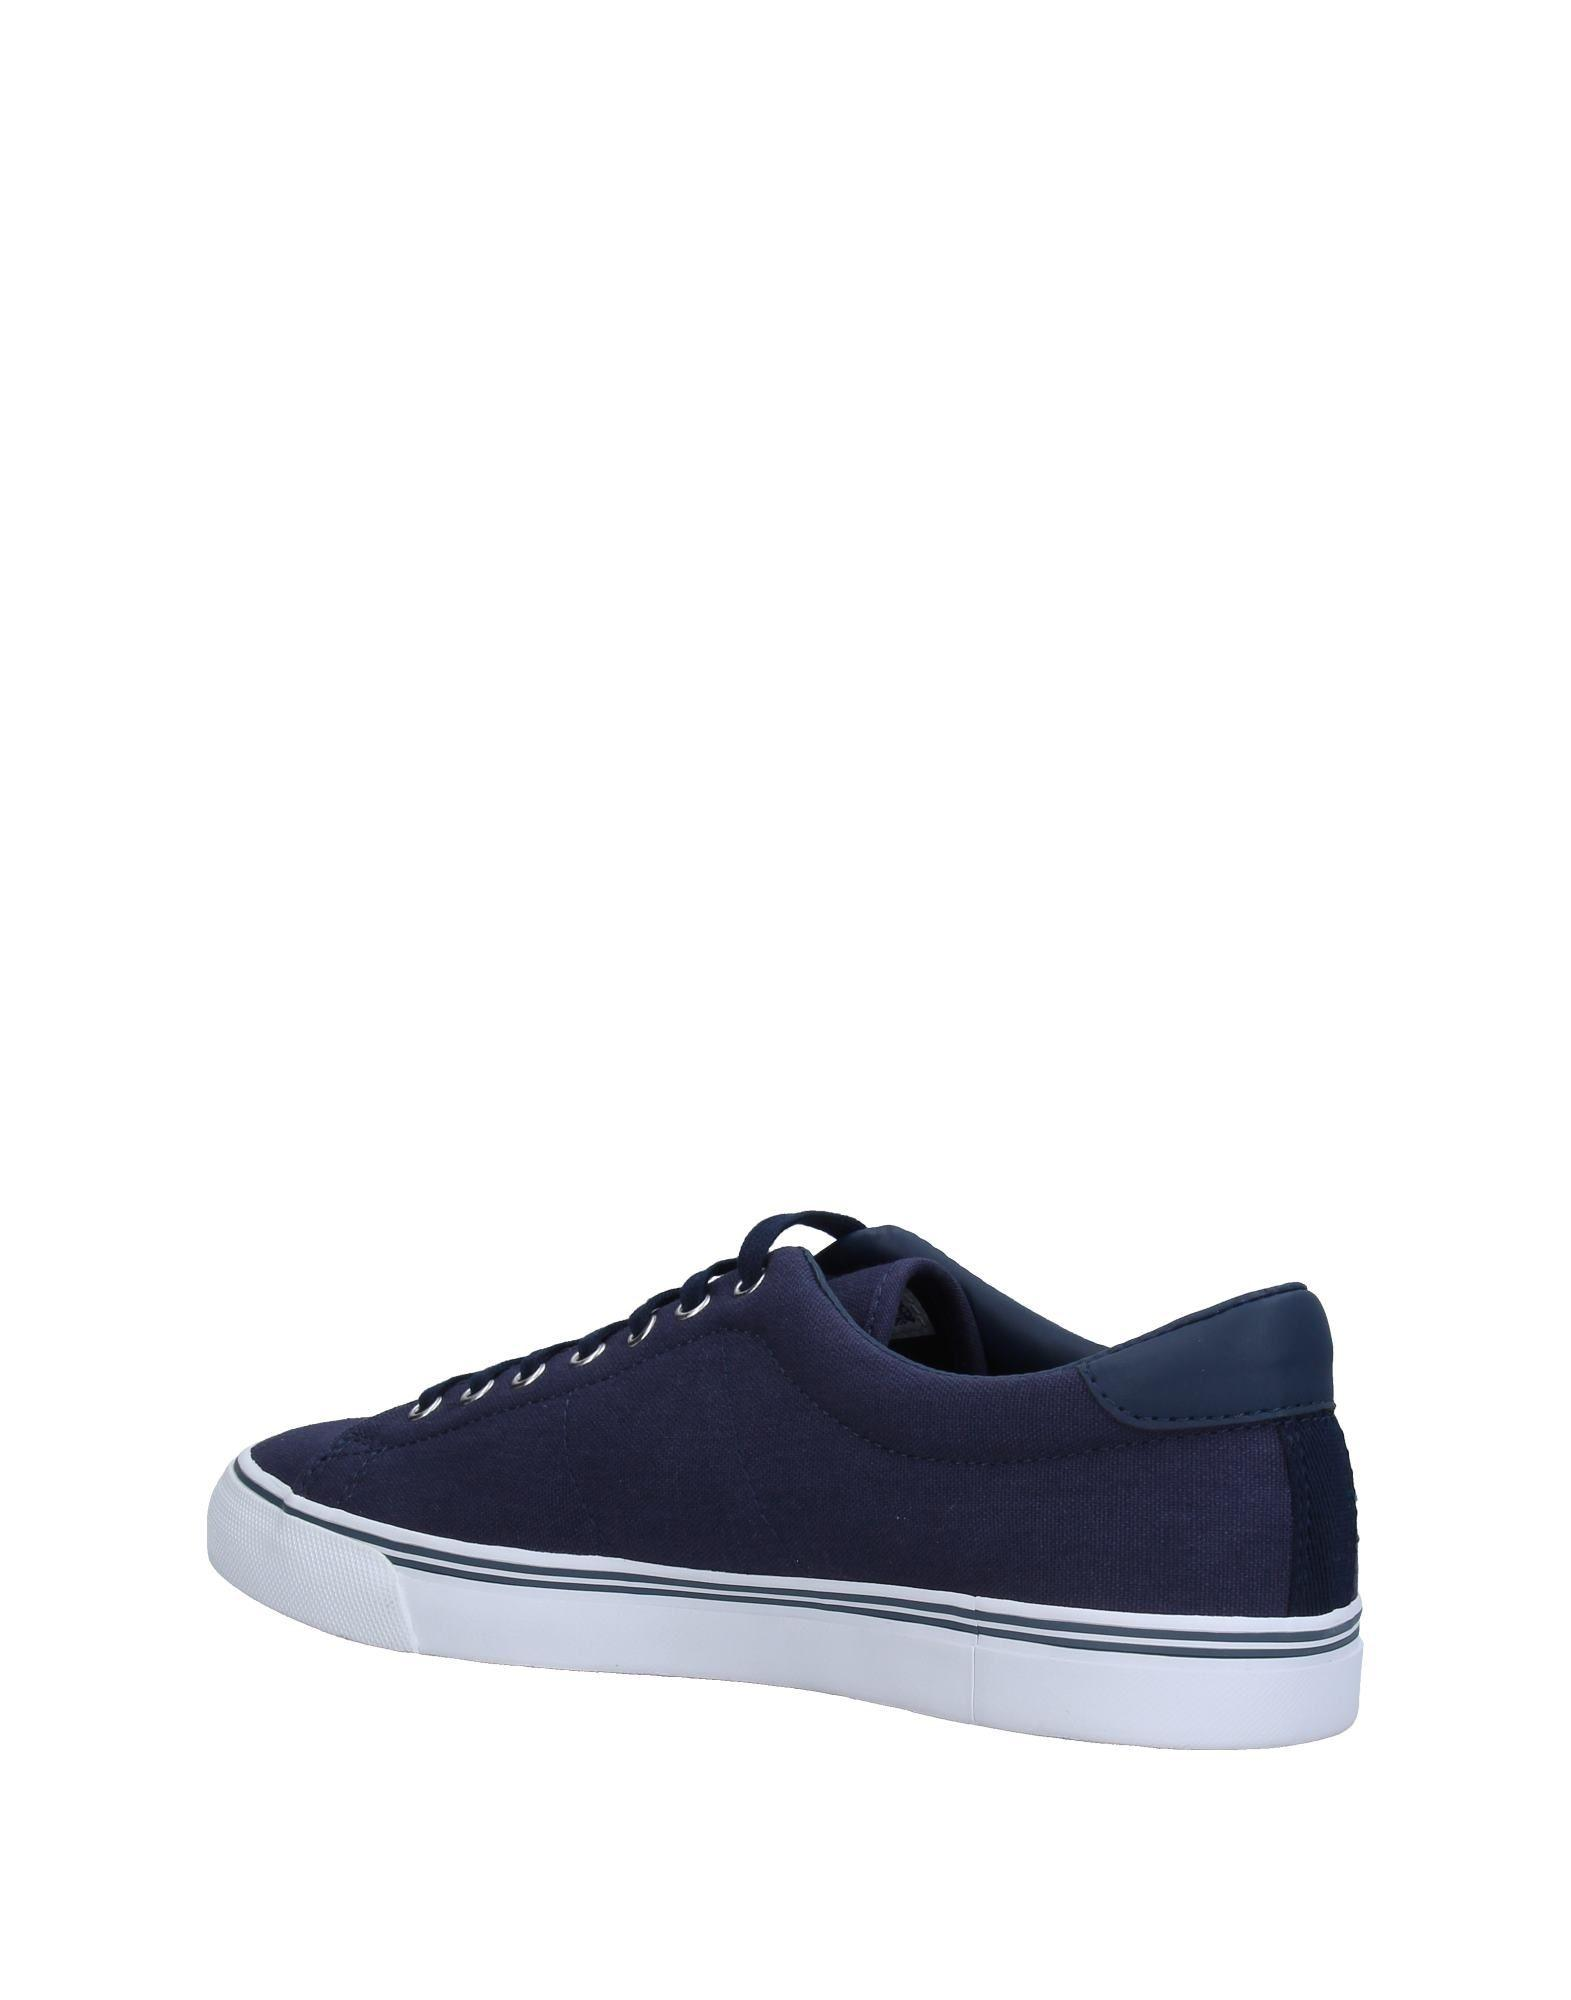 Fred Perry Blue Canvas Shoes